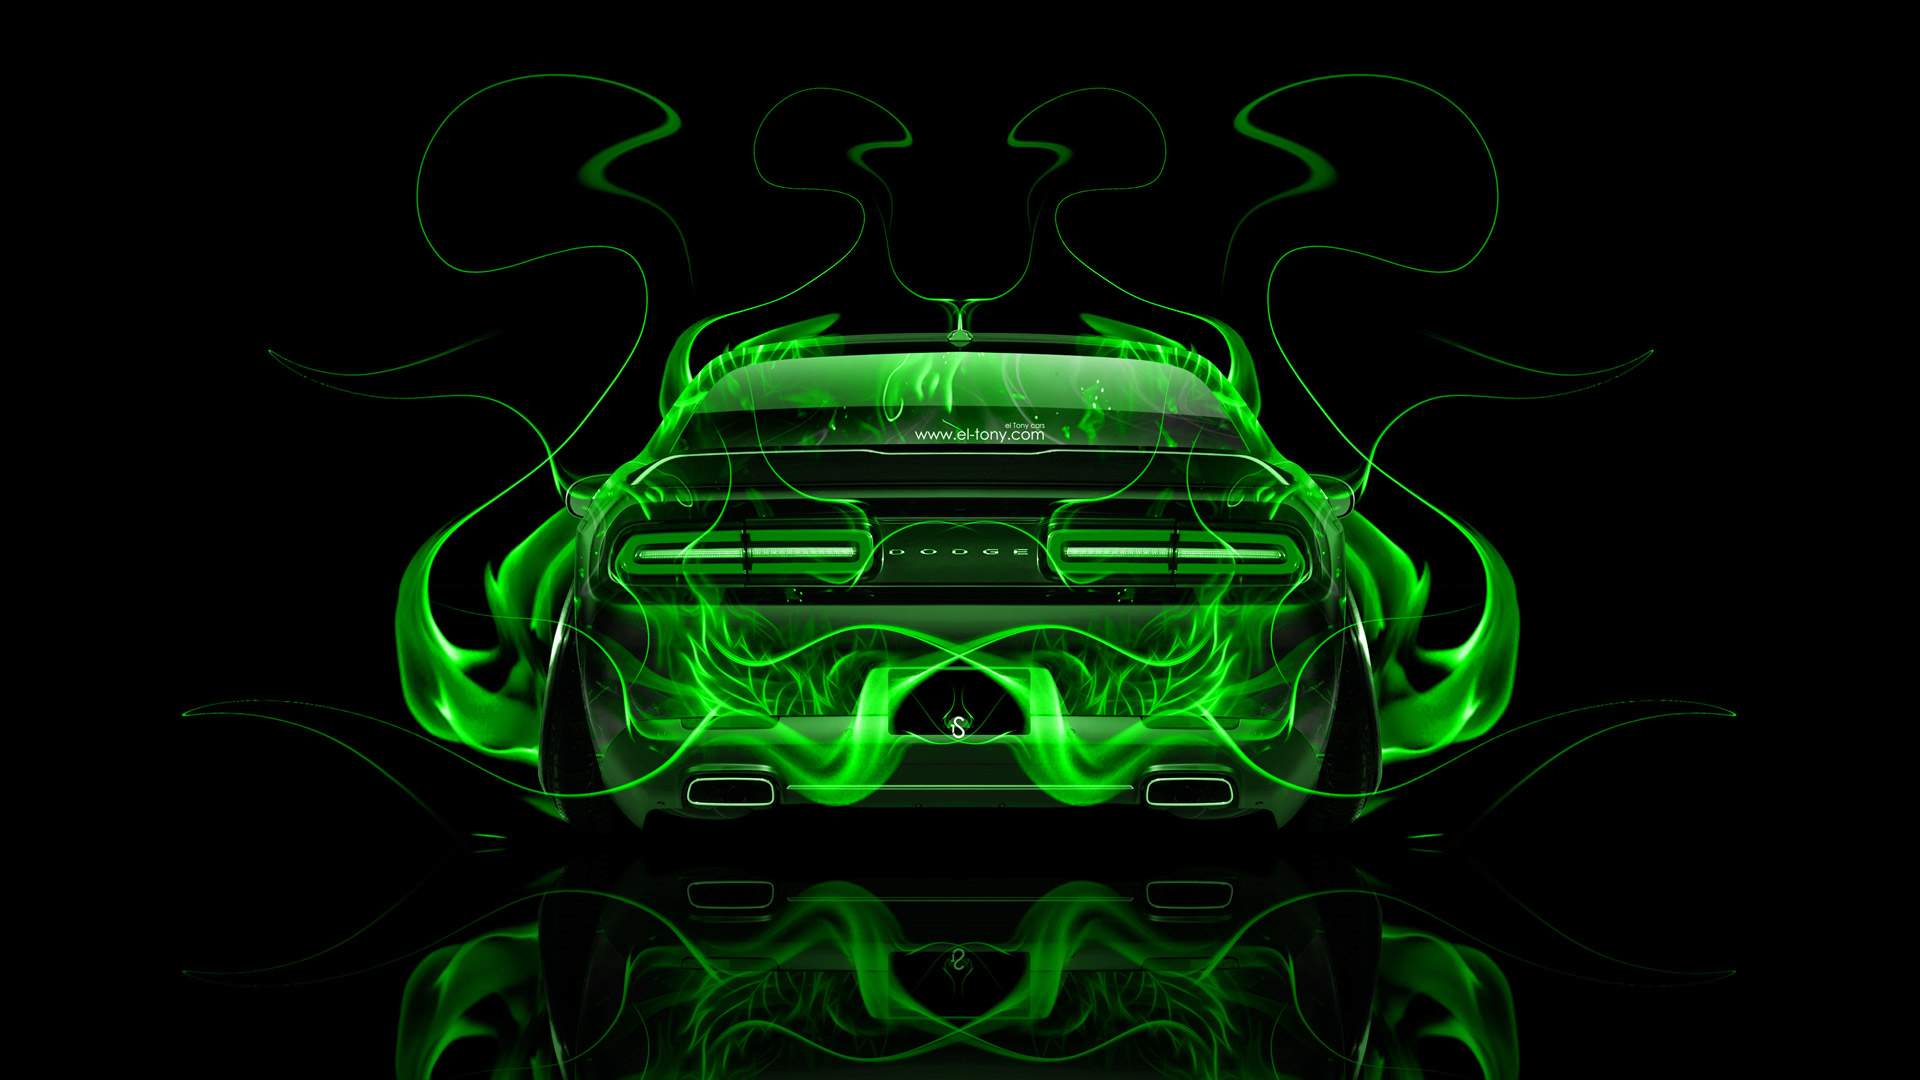 Nissan Gtr Car Hd Wallpapers Dodge Challenger Muscle Back Fire Abstract Car 2014 El Tony